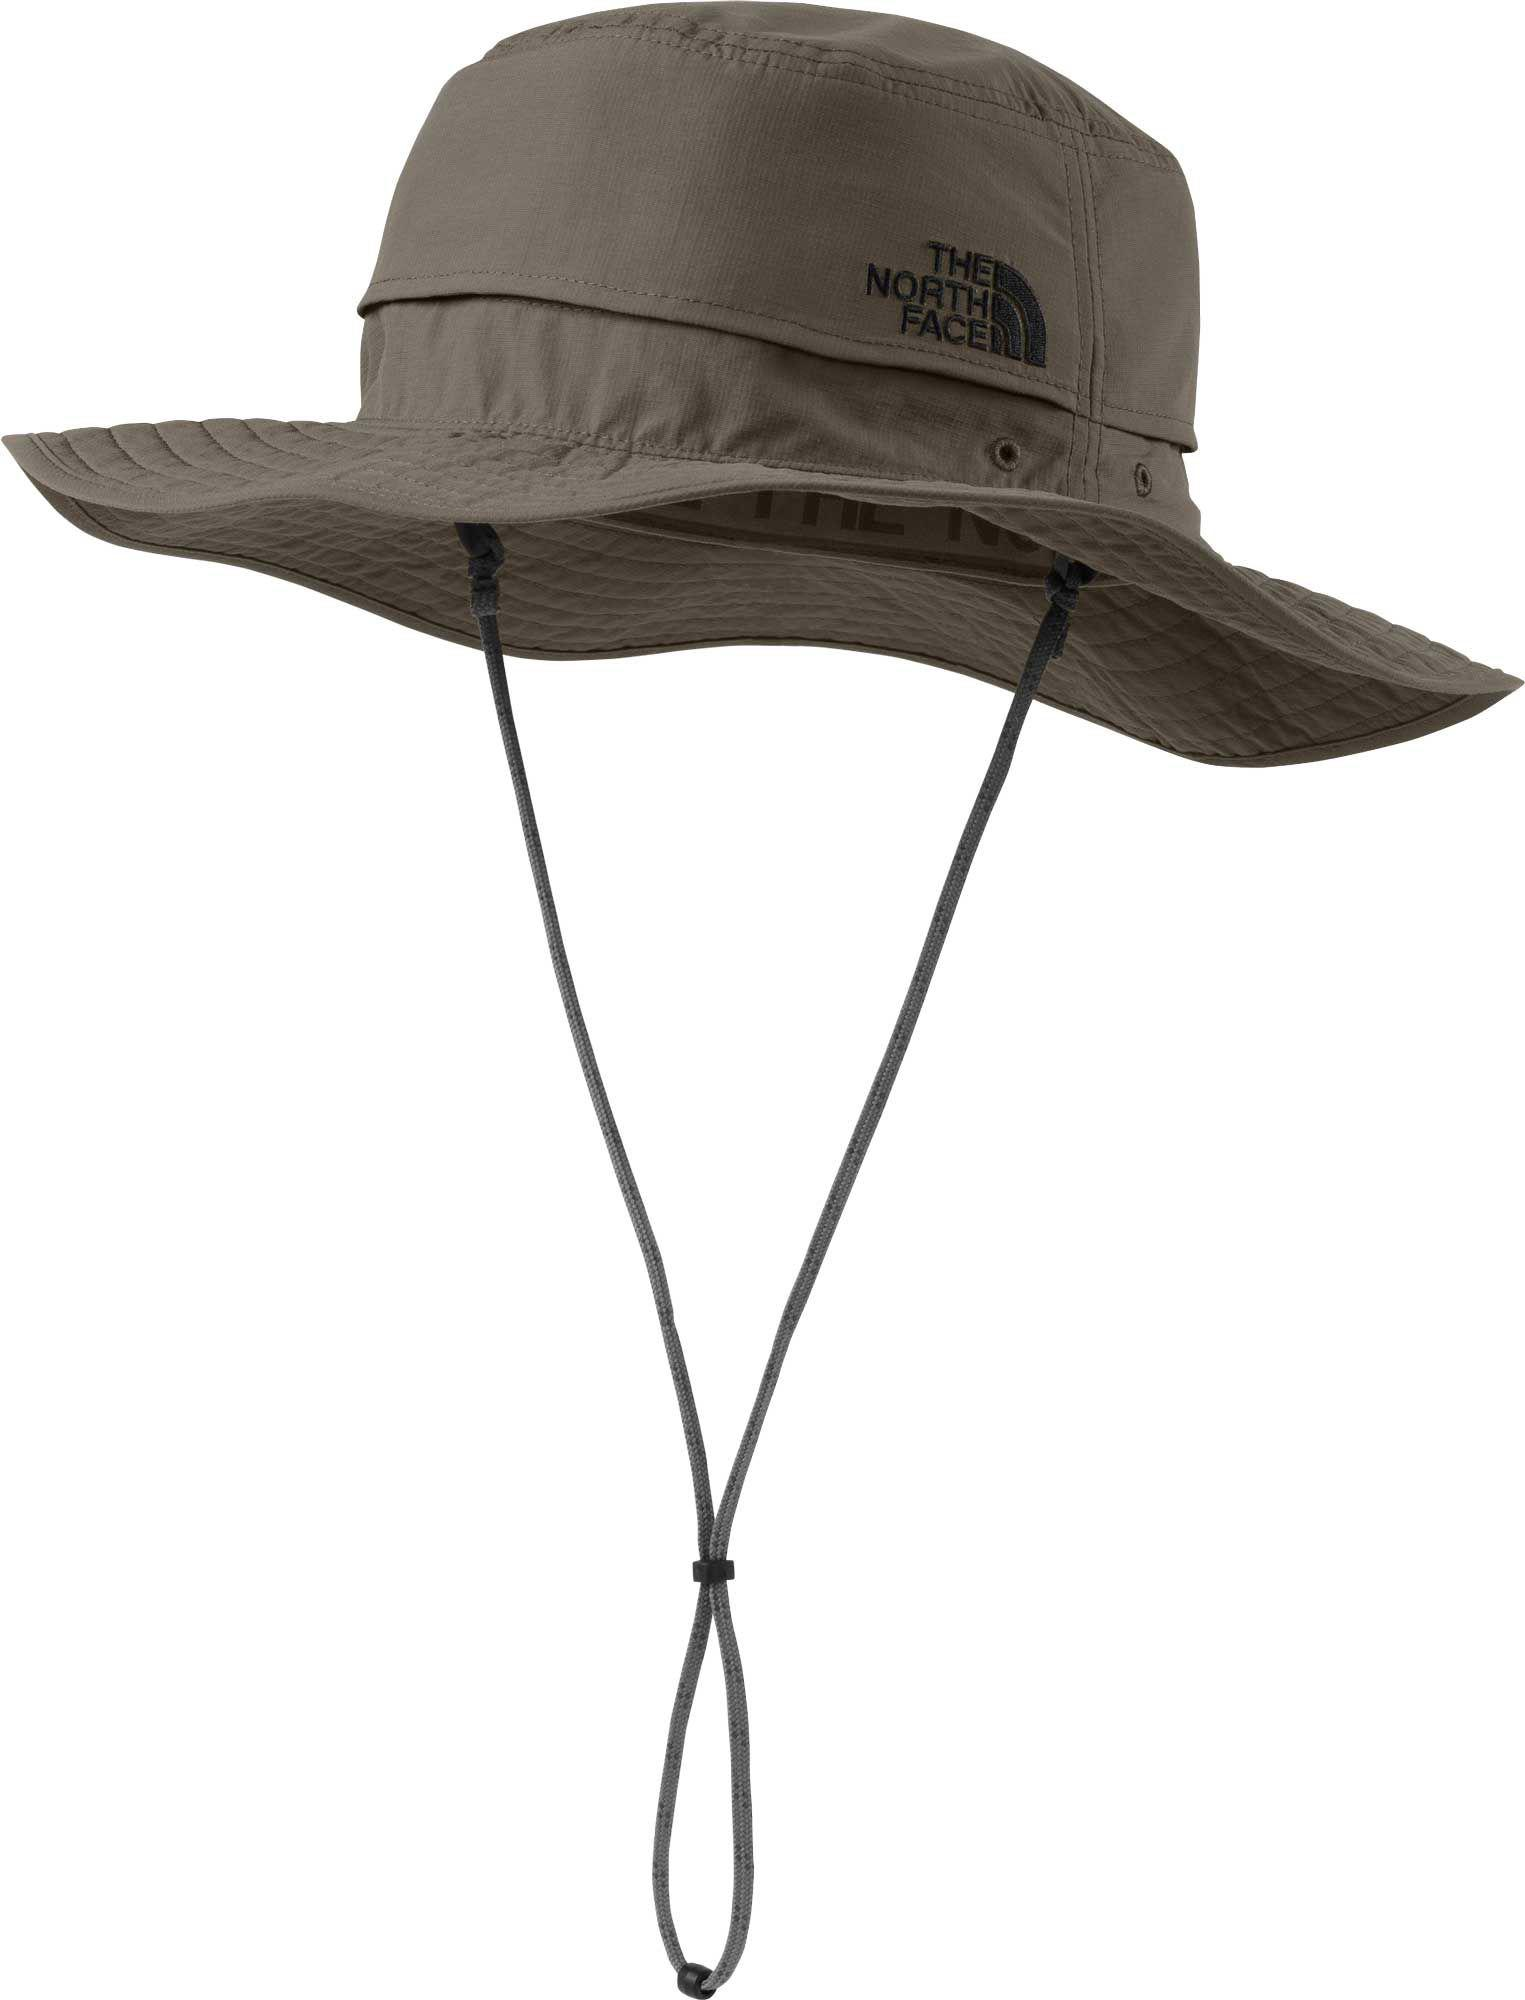 Lyst - The North Face Horizon Breeze Brimmer Hat in Brown for Men a39dbf960fe2